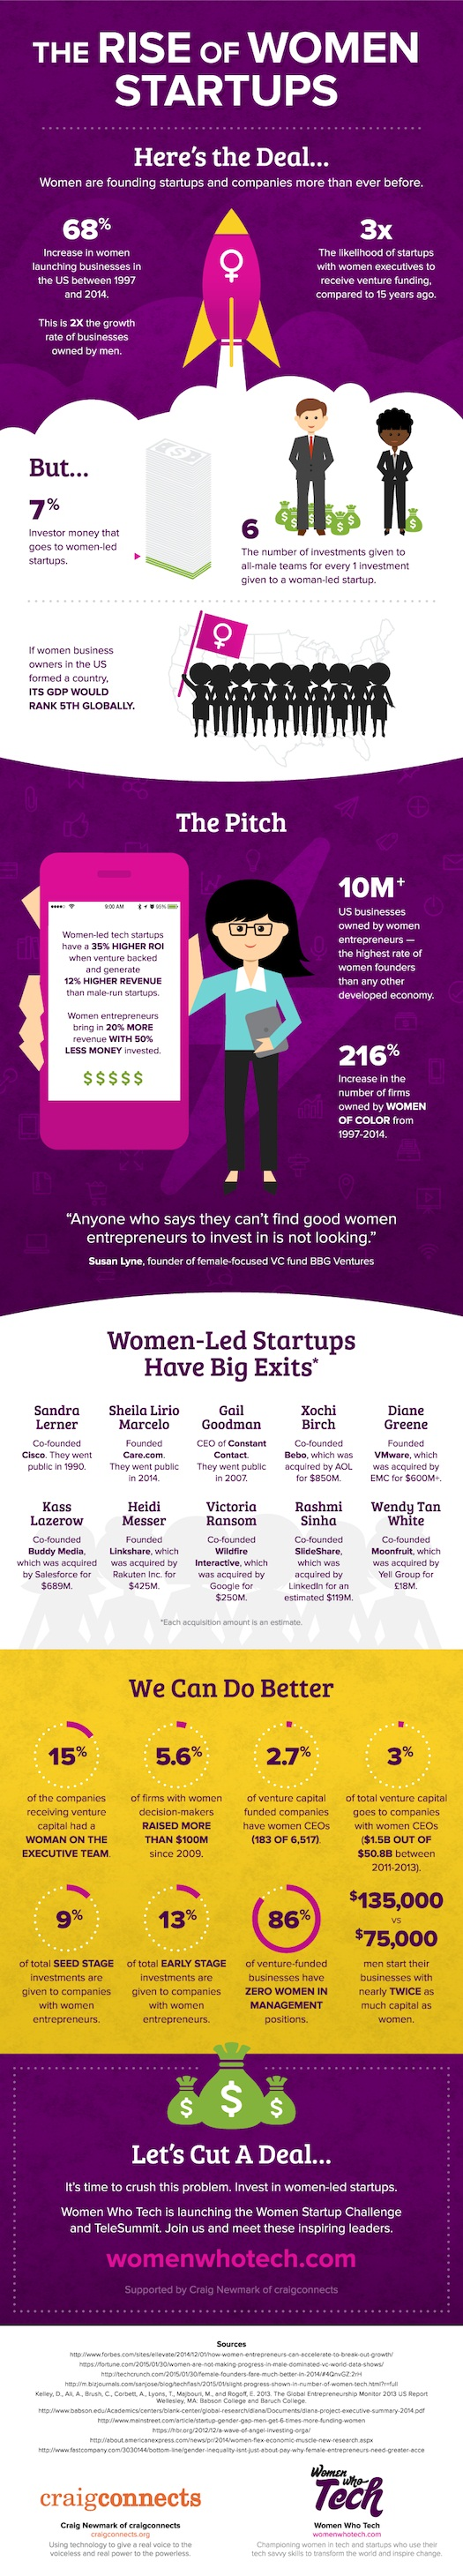 the-rise-of-women-startups fig1 (cr)